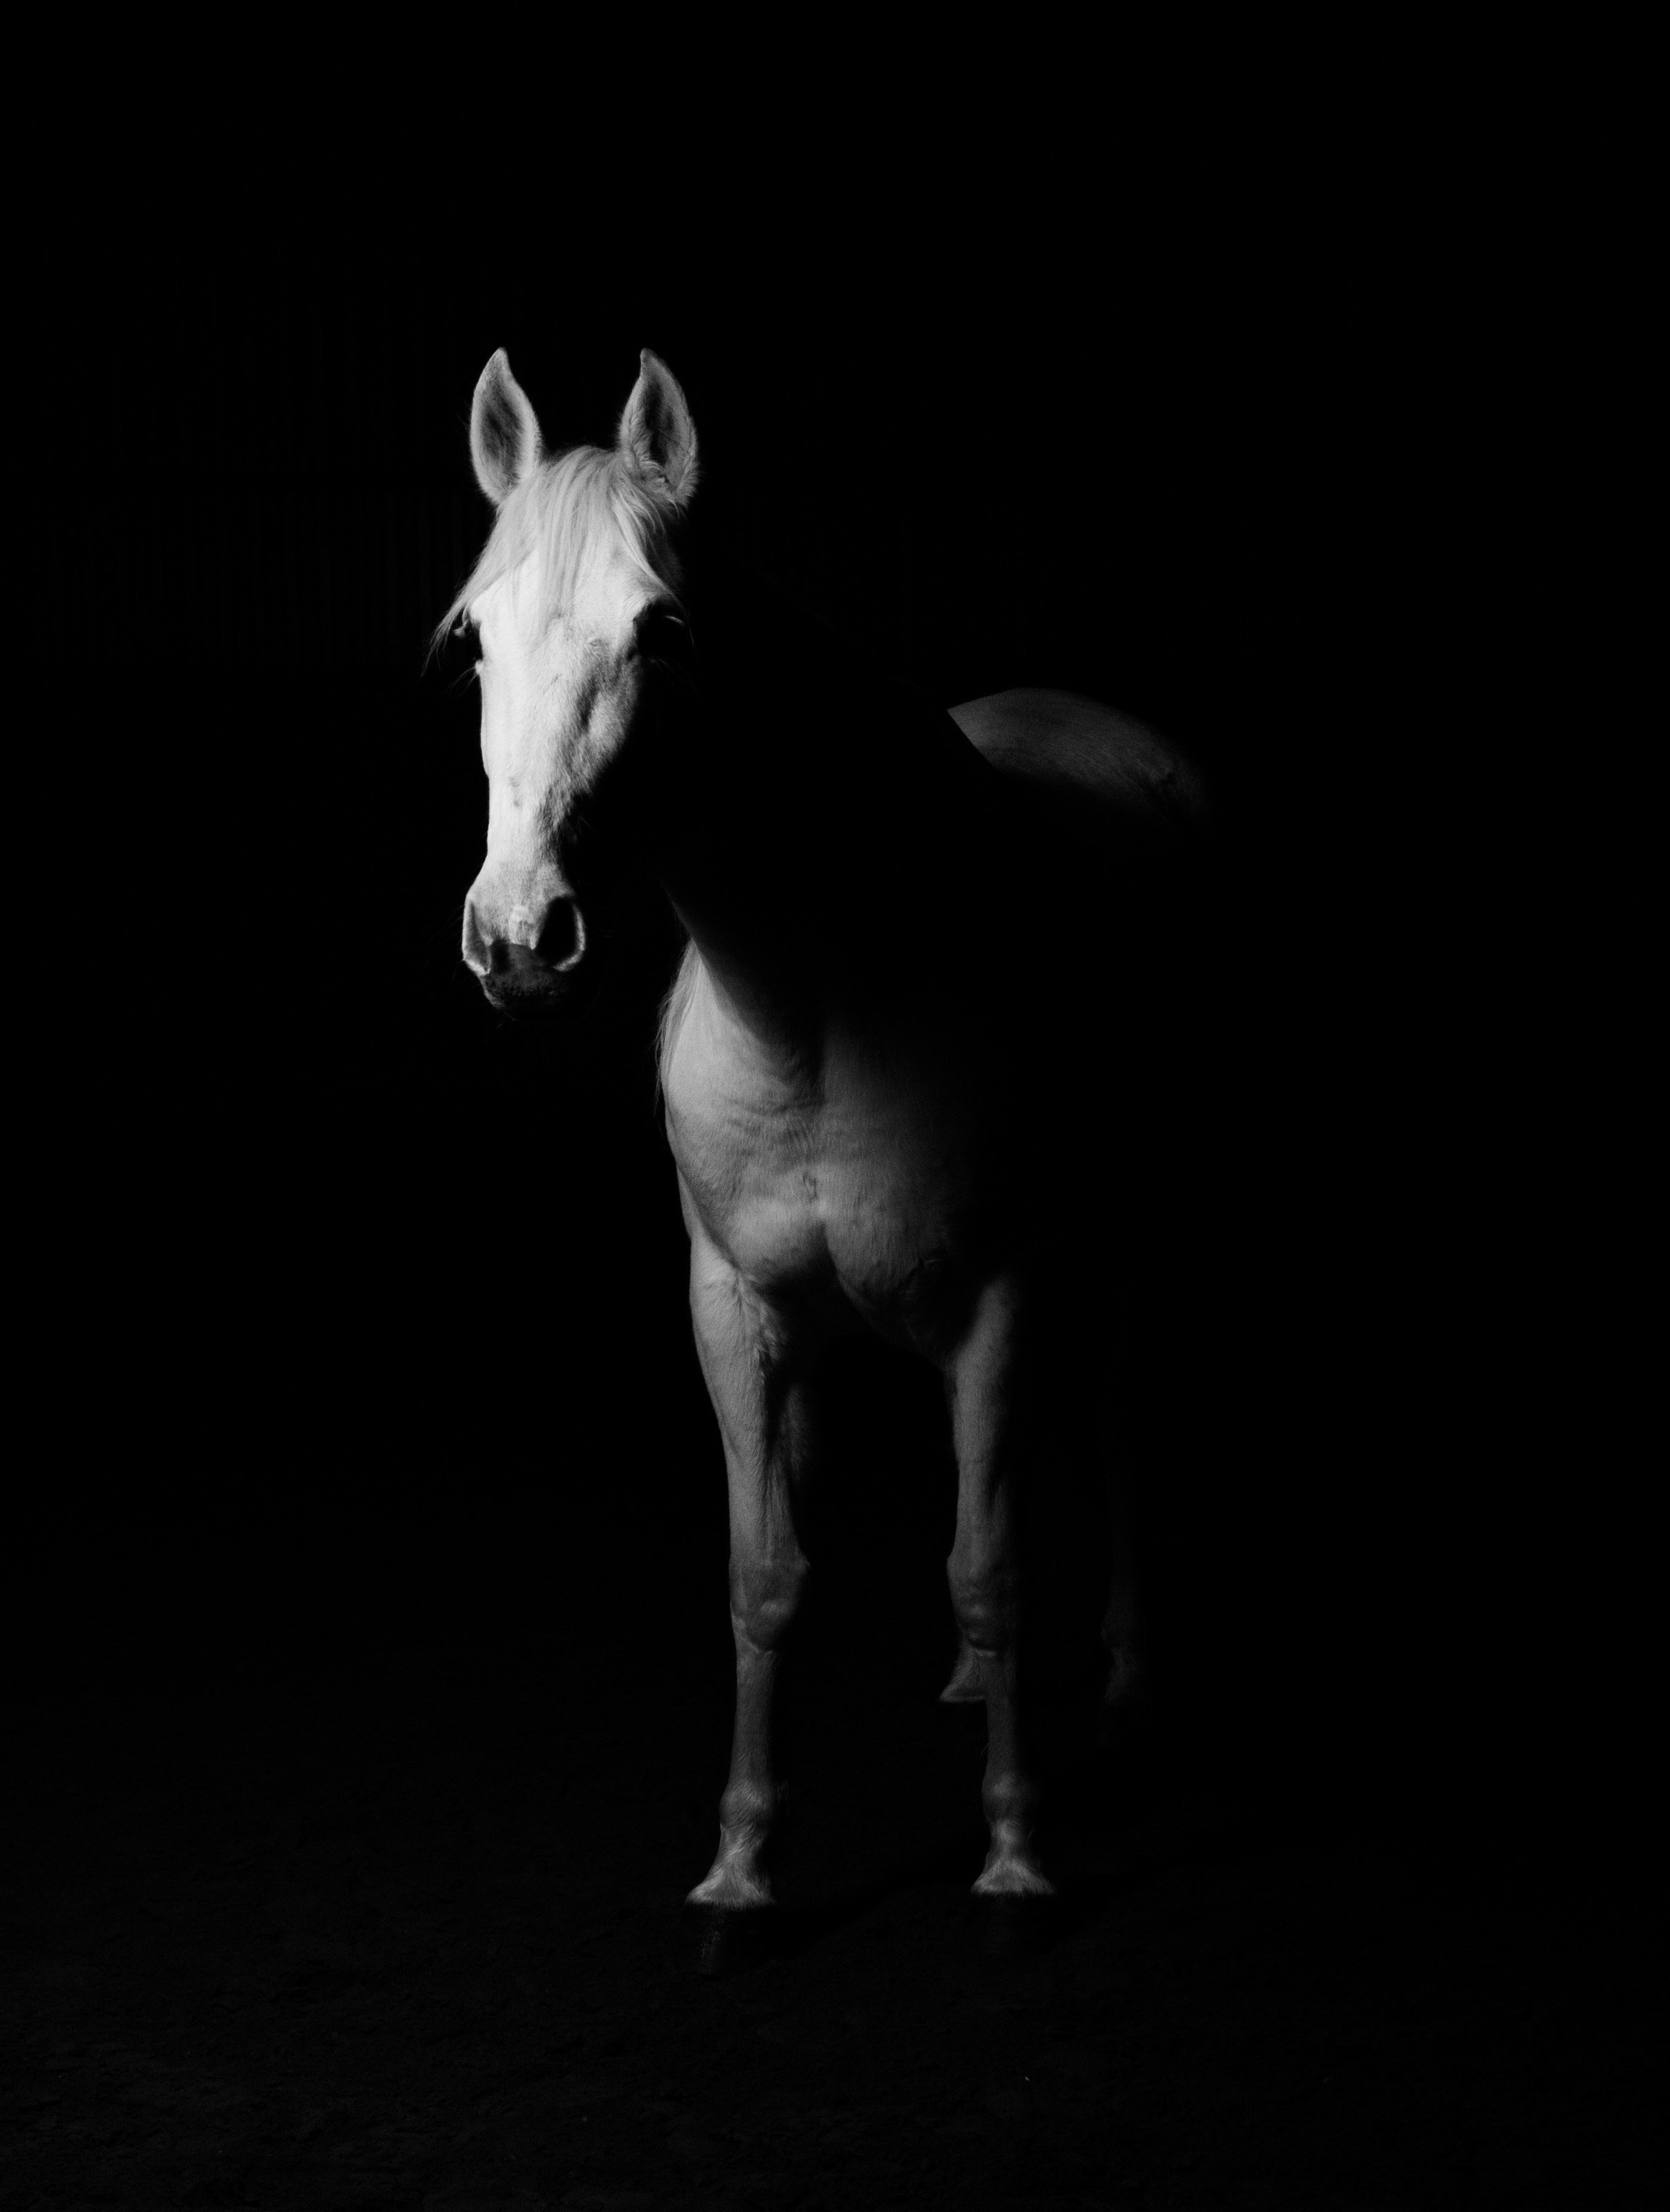 White Horse Black And White Photo Free Stock Photo